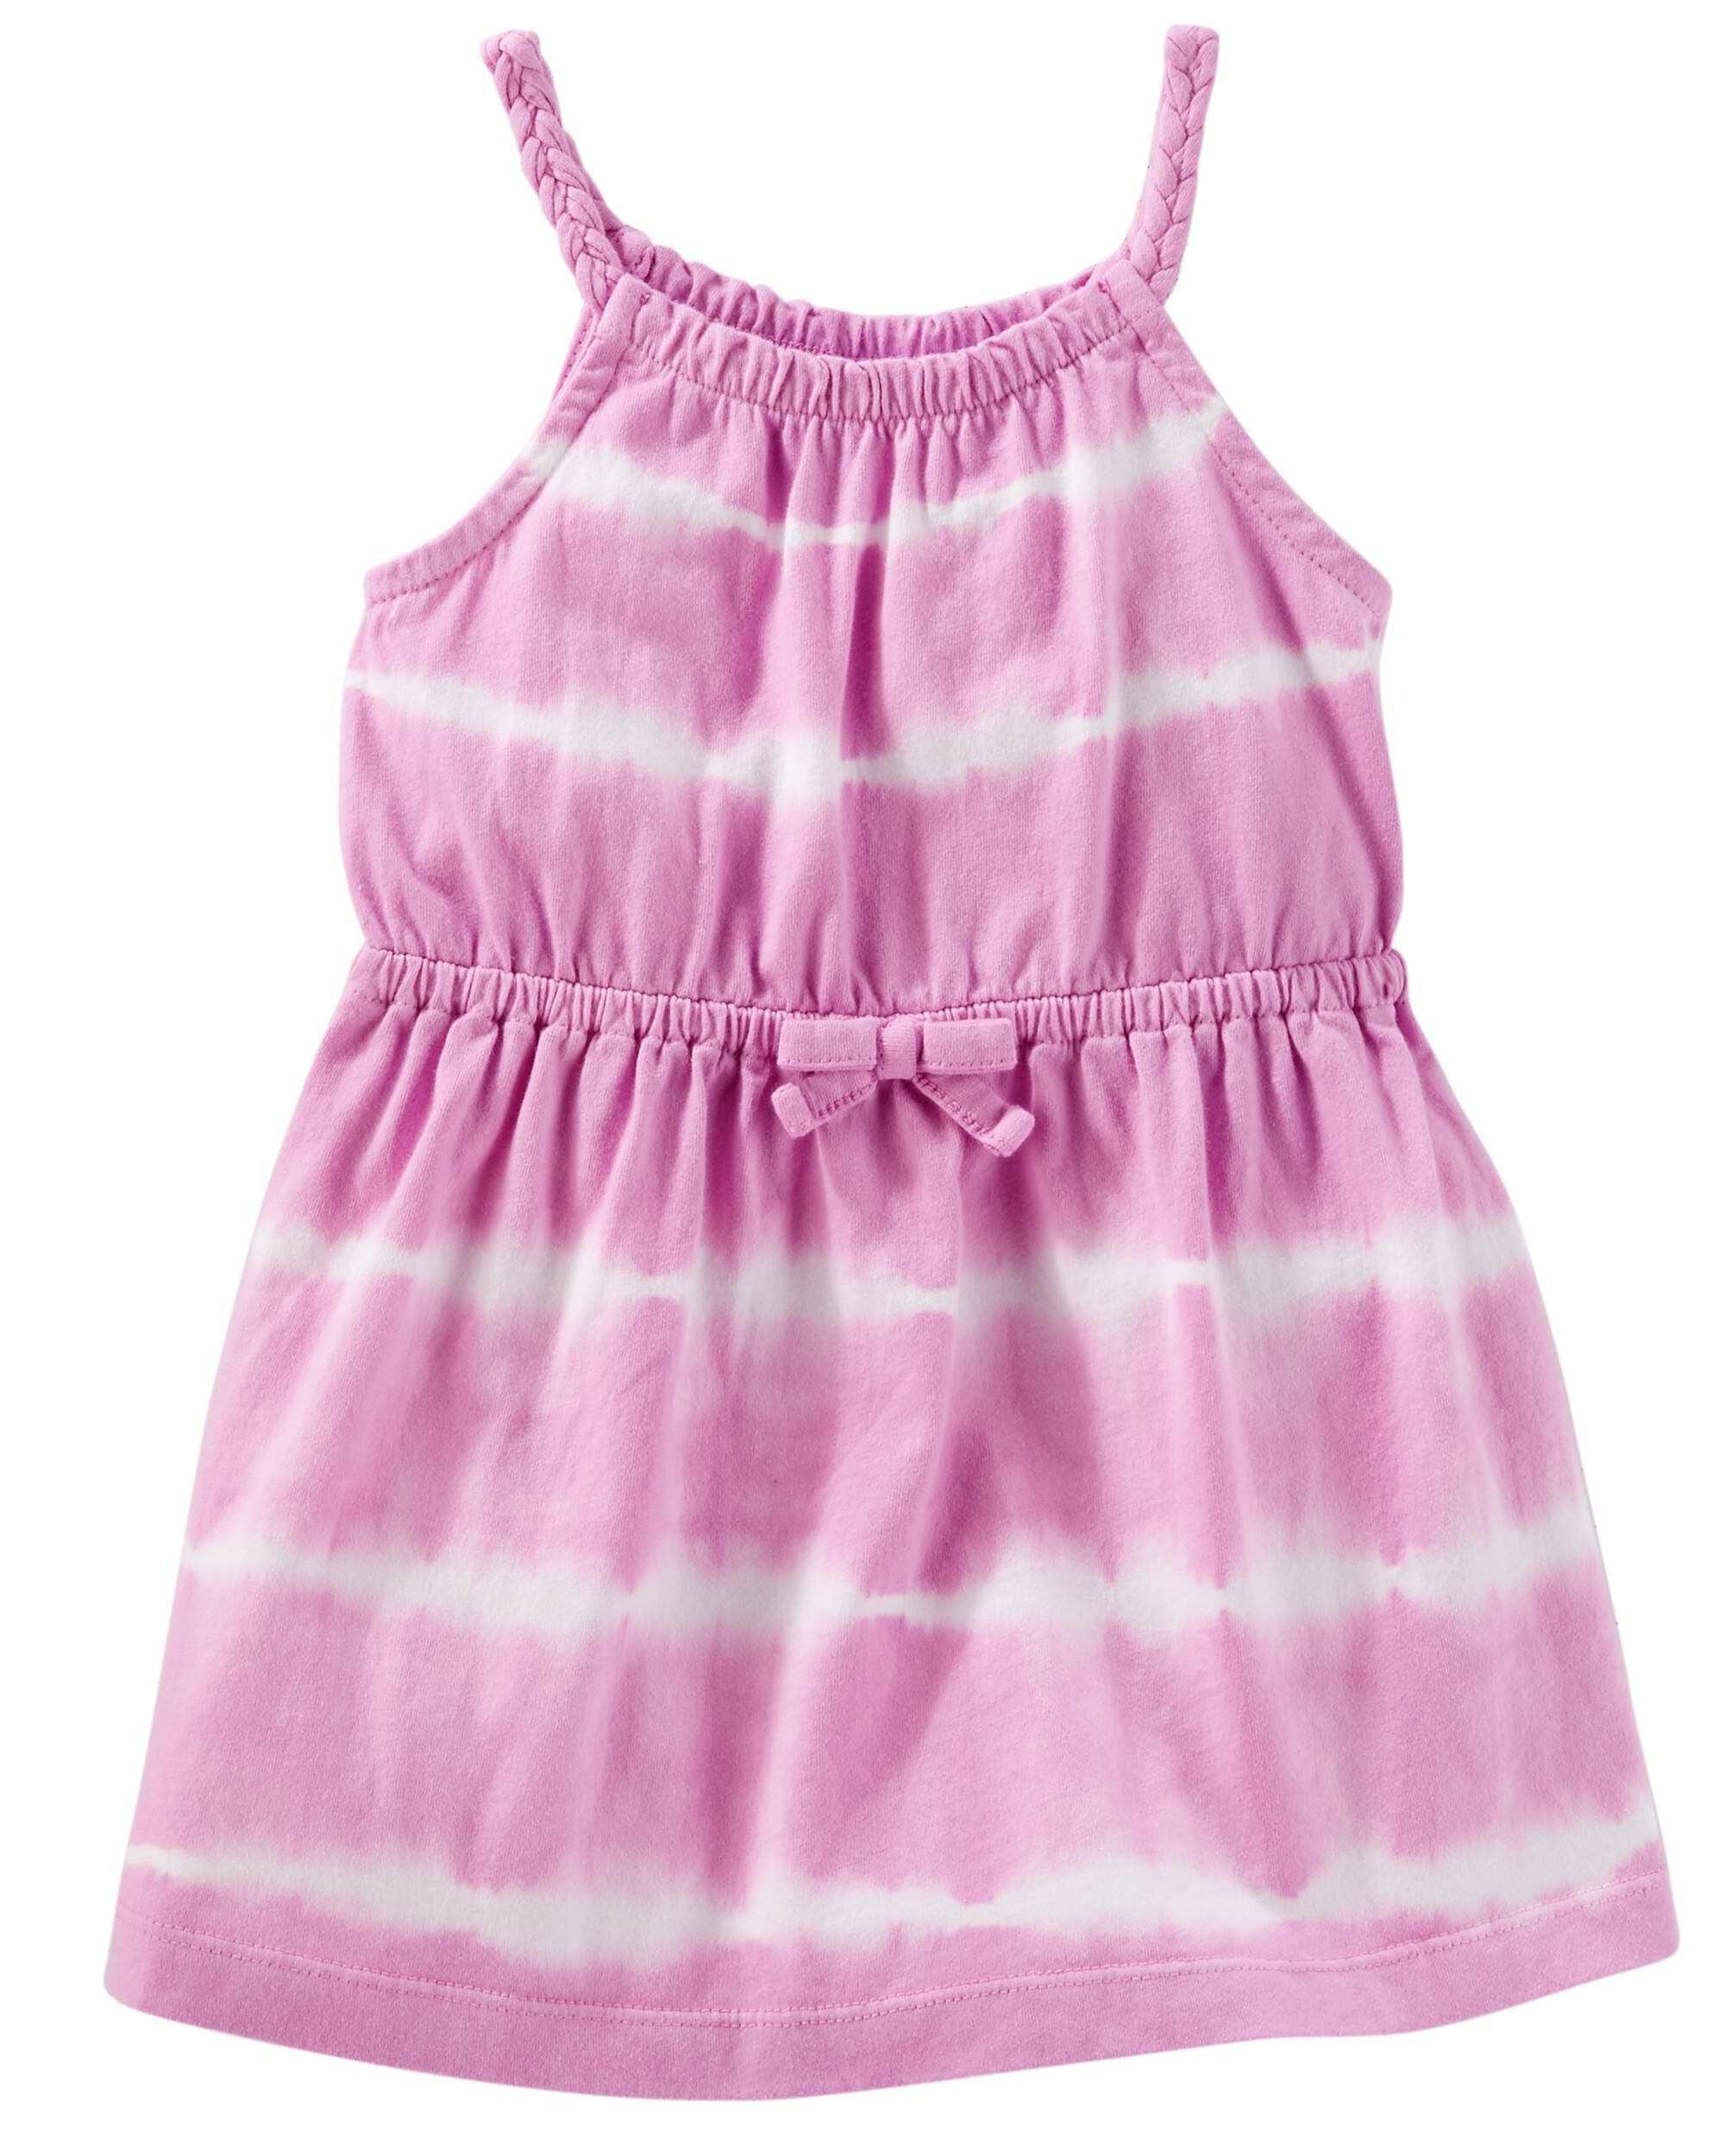 727bdefd0d Baby Girl Tie-Dye Dress | OshKosh.com